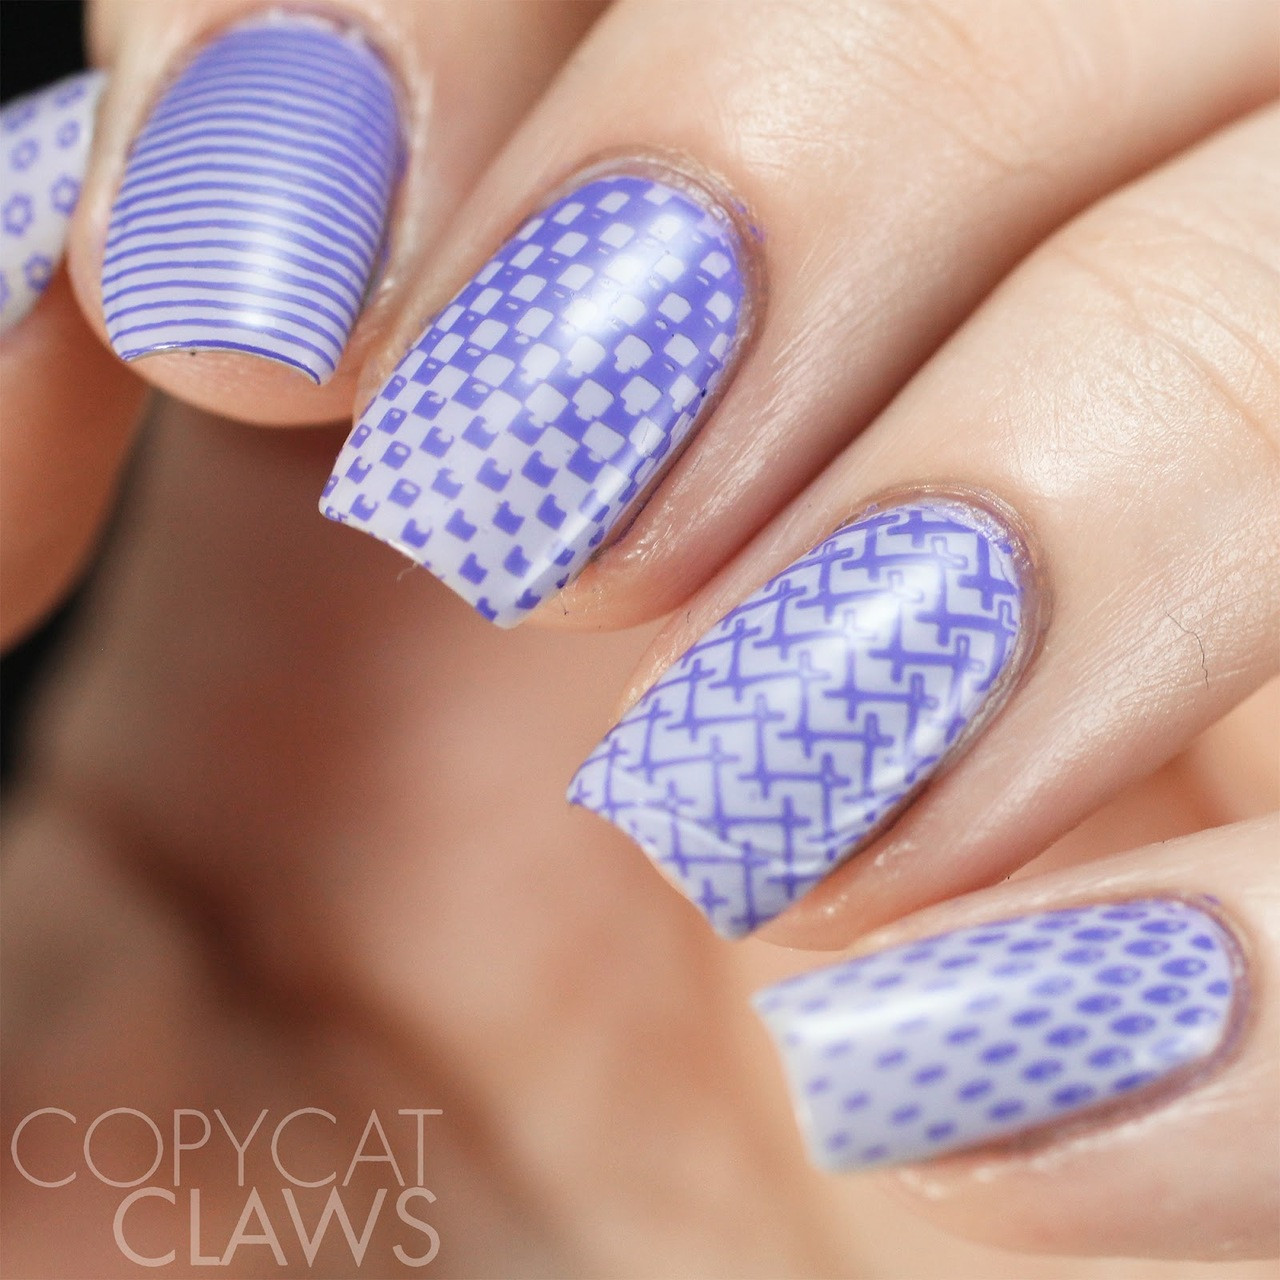 Nail Art Ideas » Where To Buy Nail Art Supplies - Pictures of Nail ...